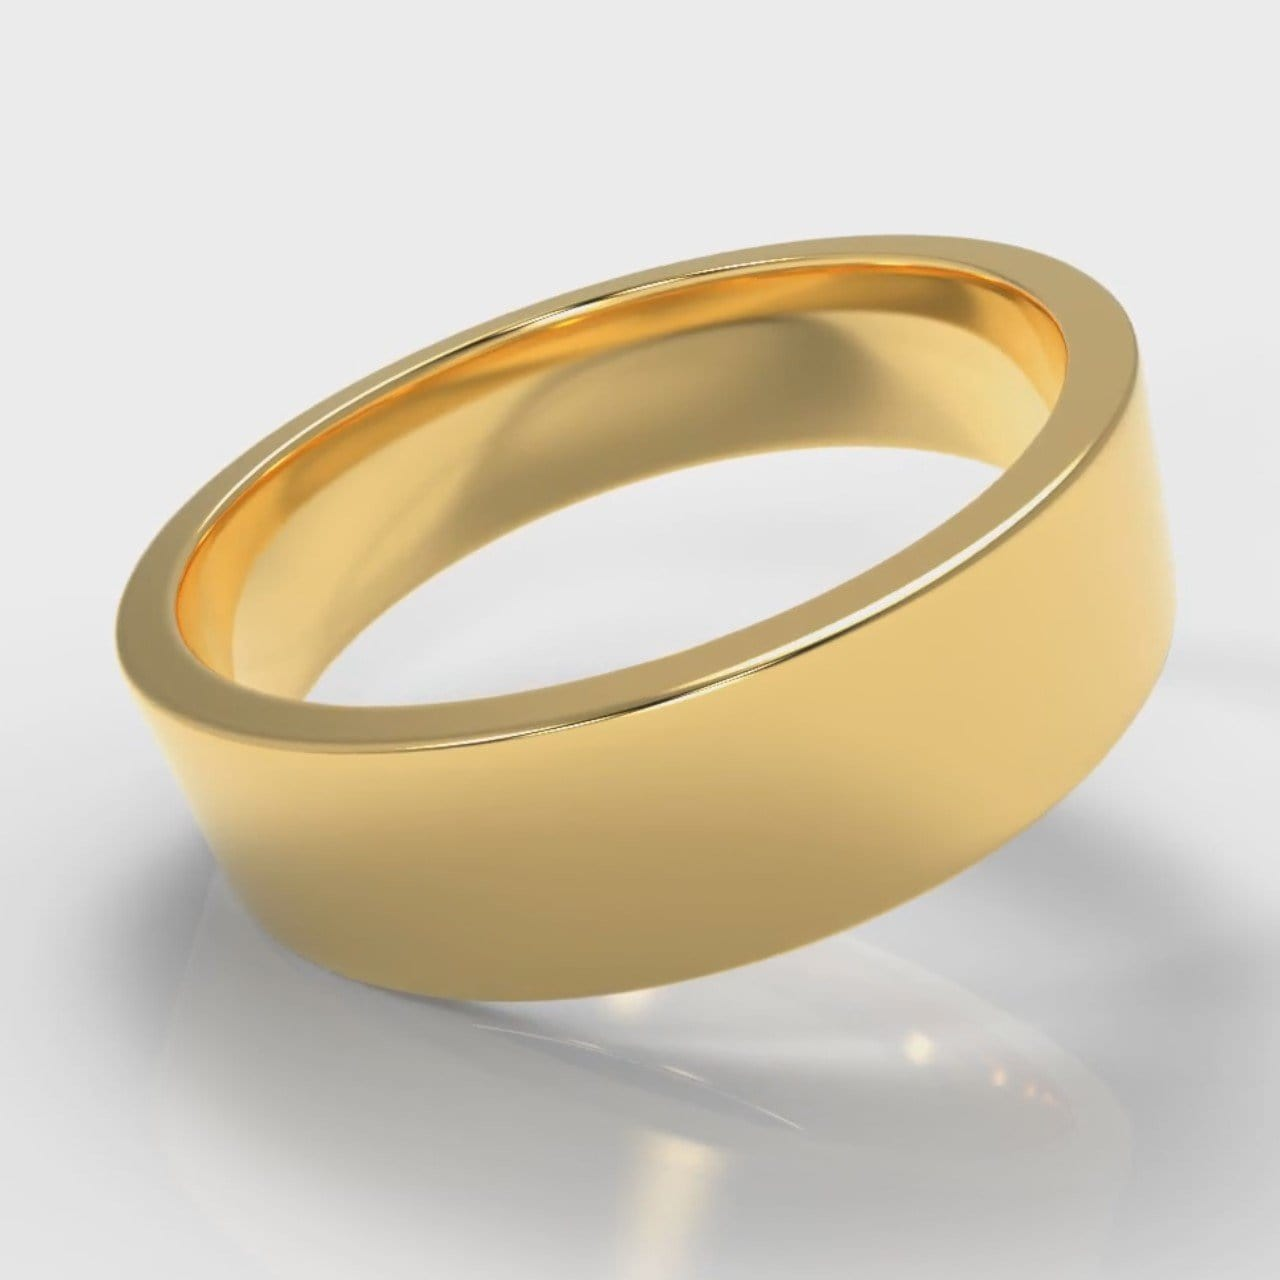 6mm Flat Top Comfort Fit Wedding Ring - Yellow Gold